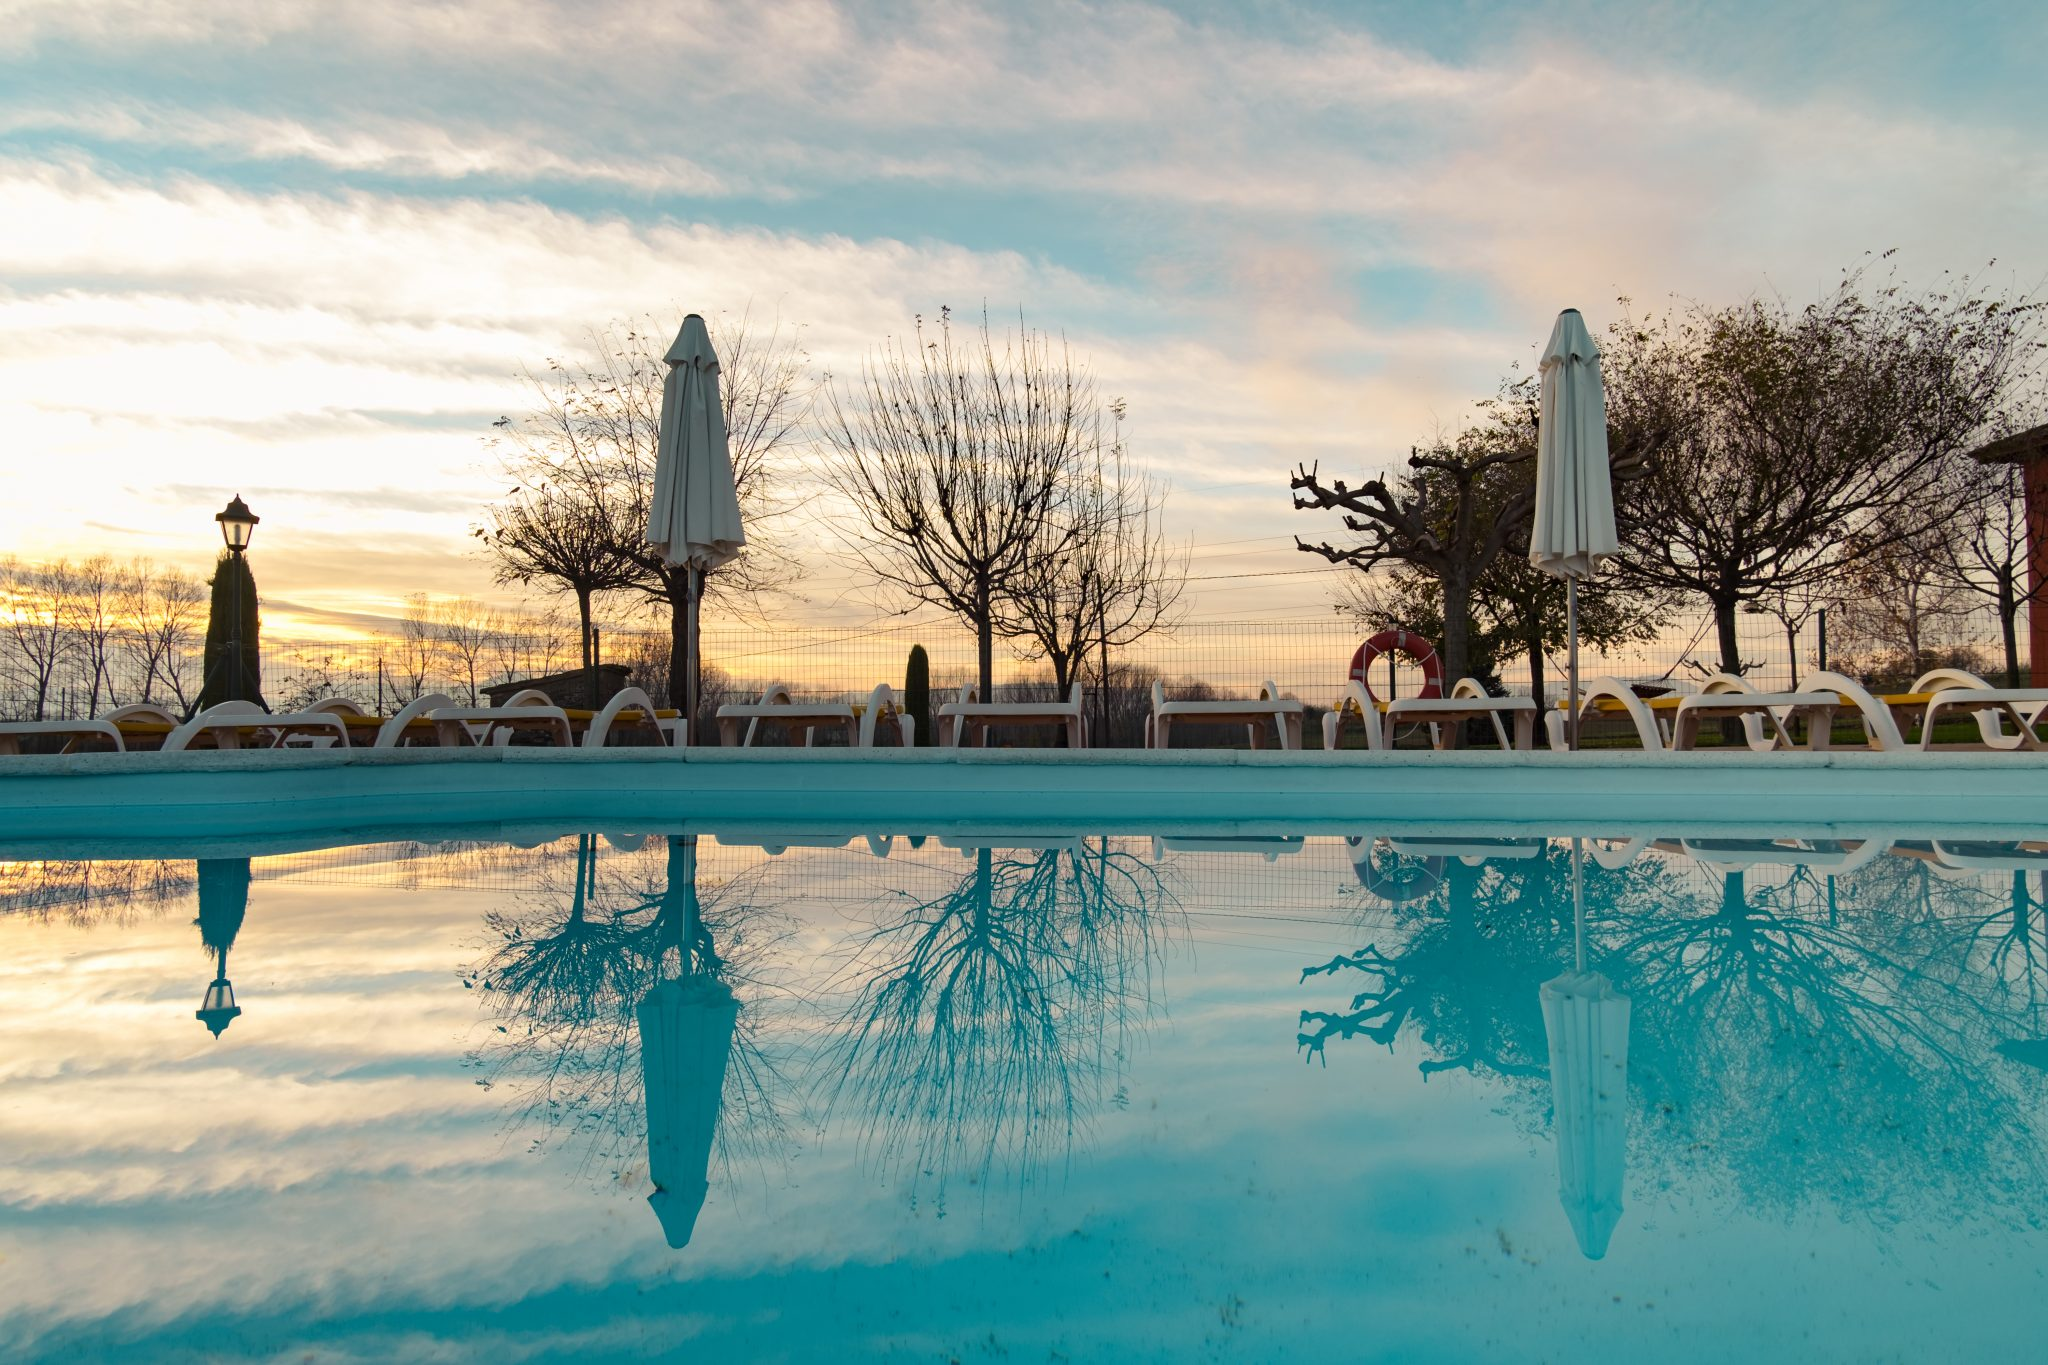 View of a pool at sunset photo by Jo Kassis